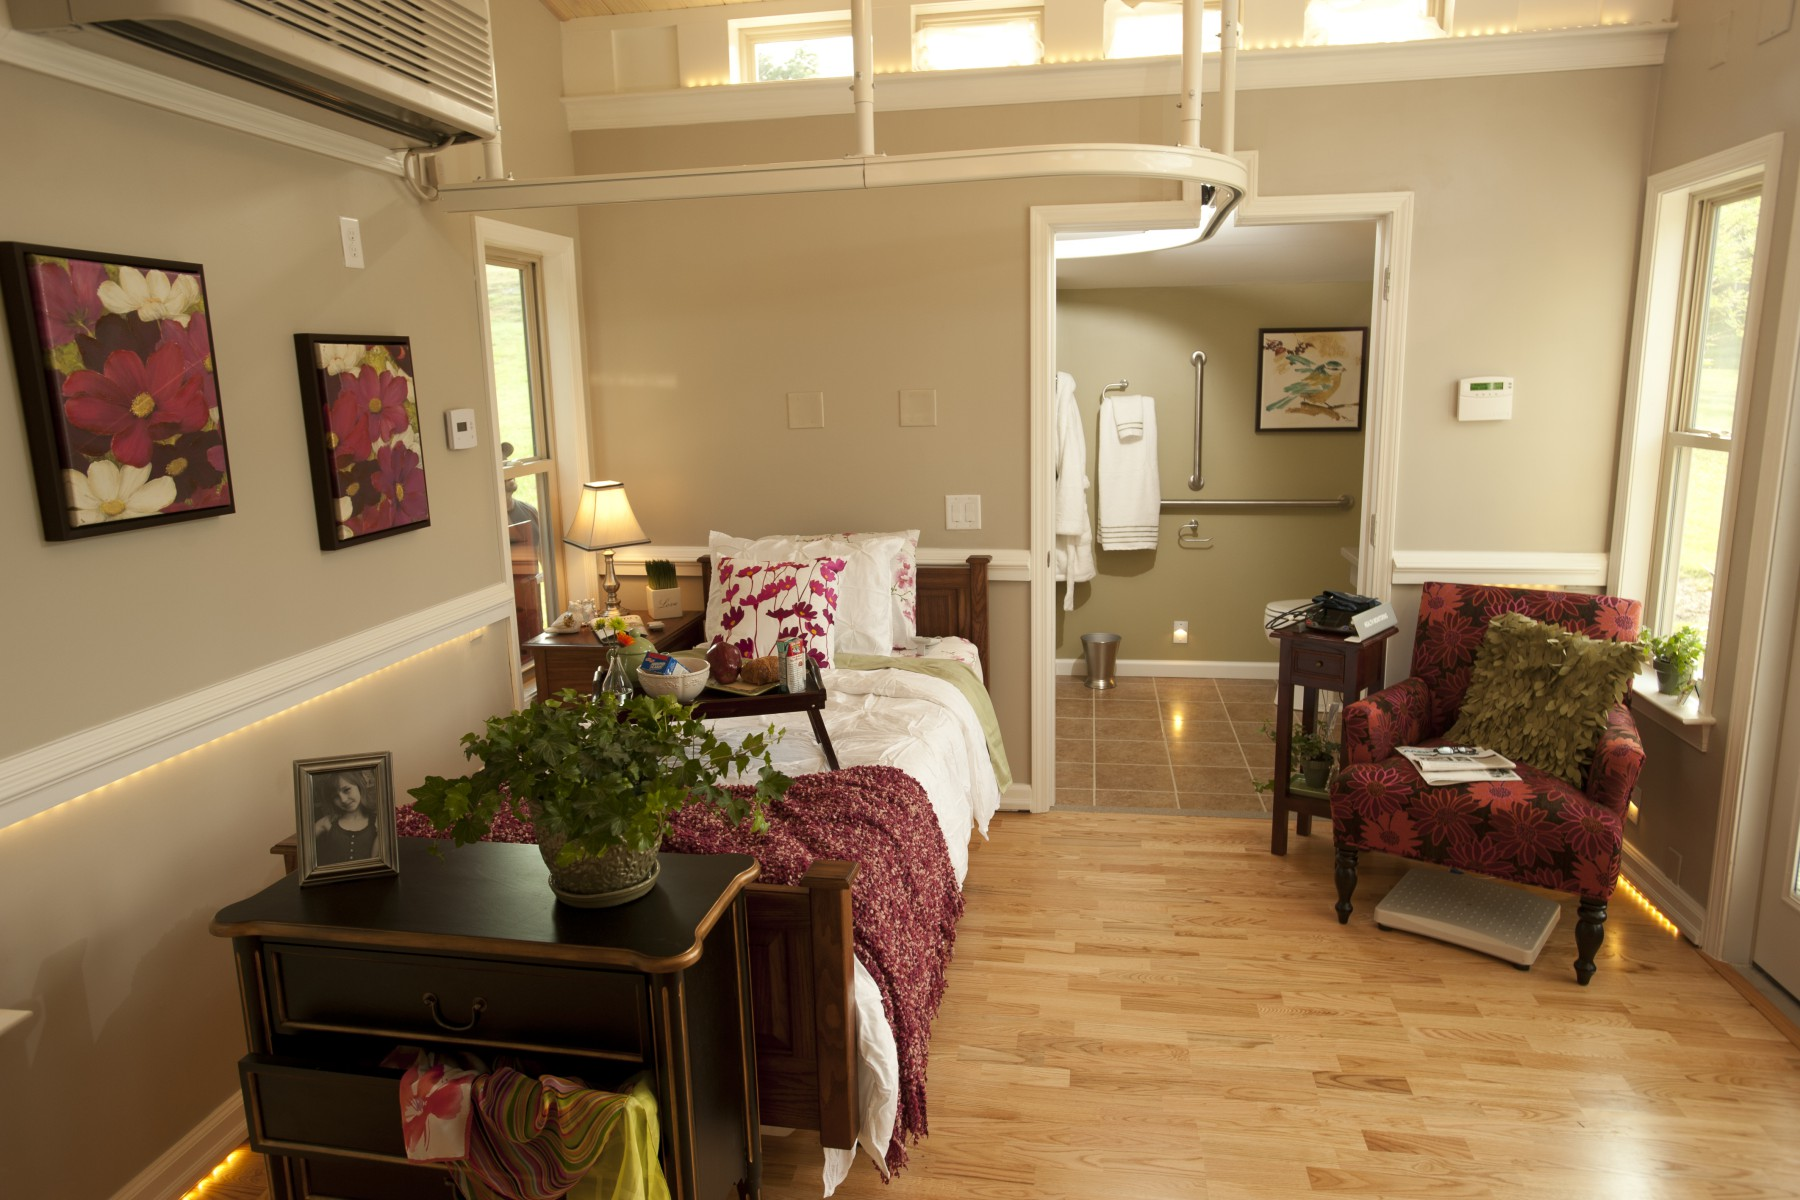 Home designs living upstairs from your aging.